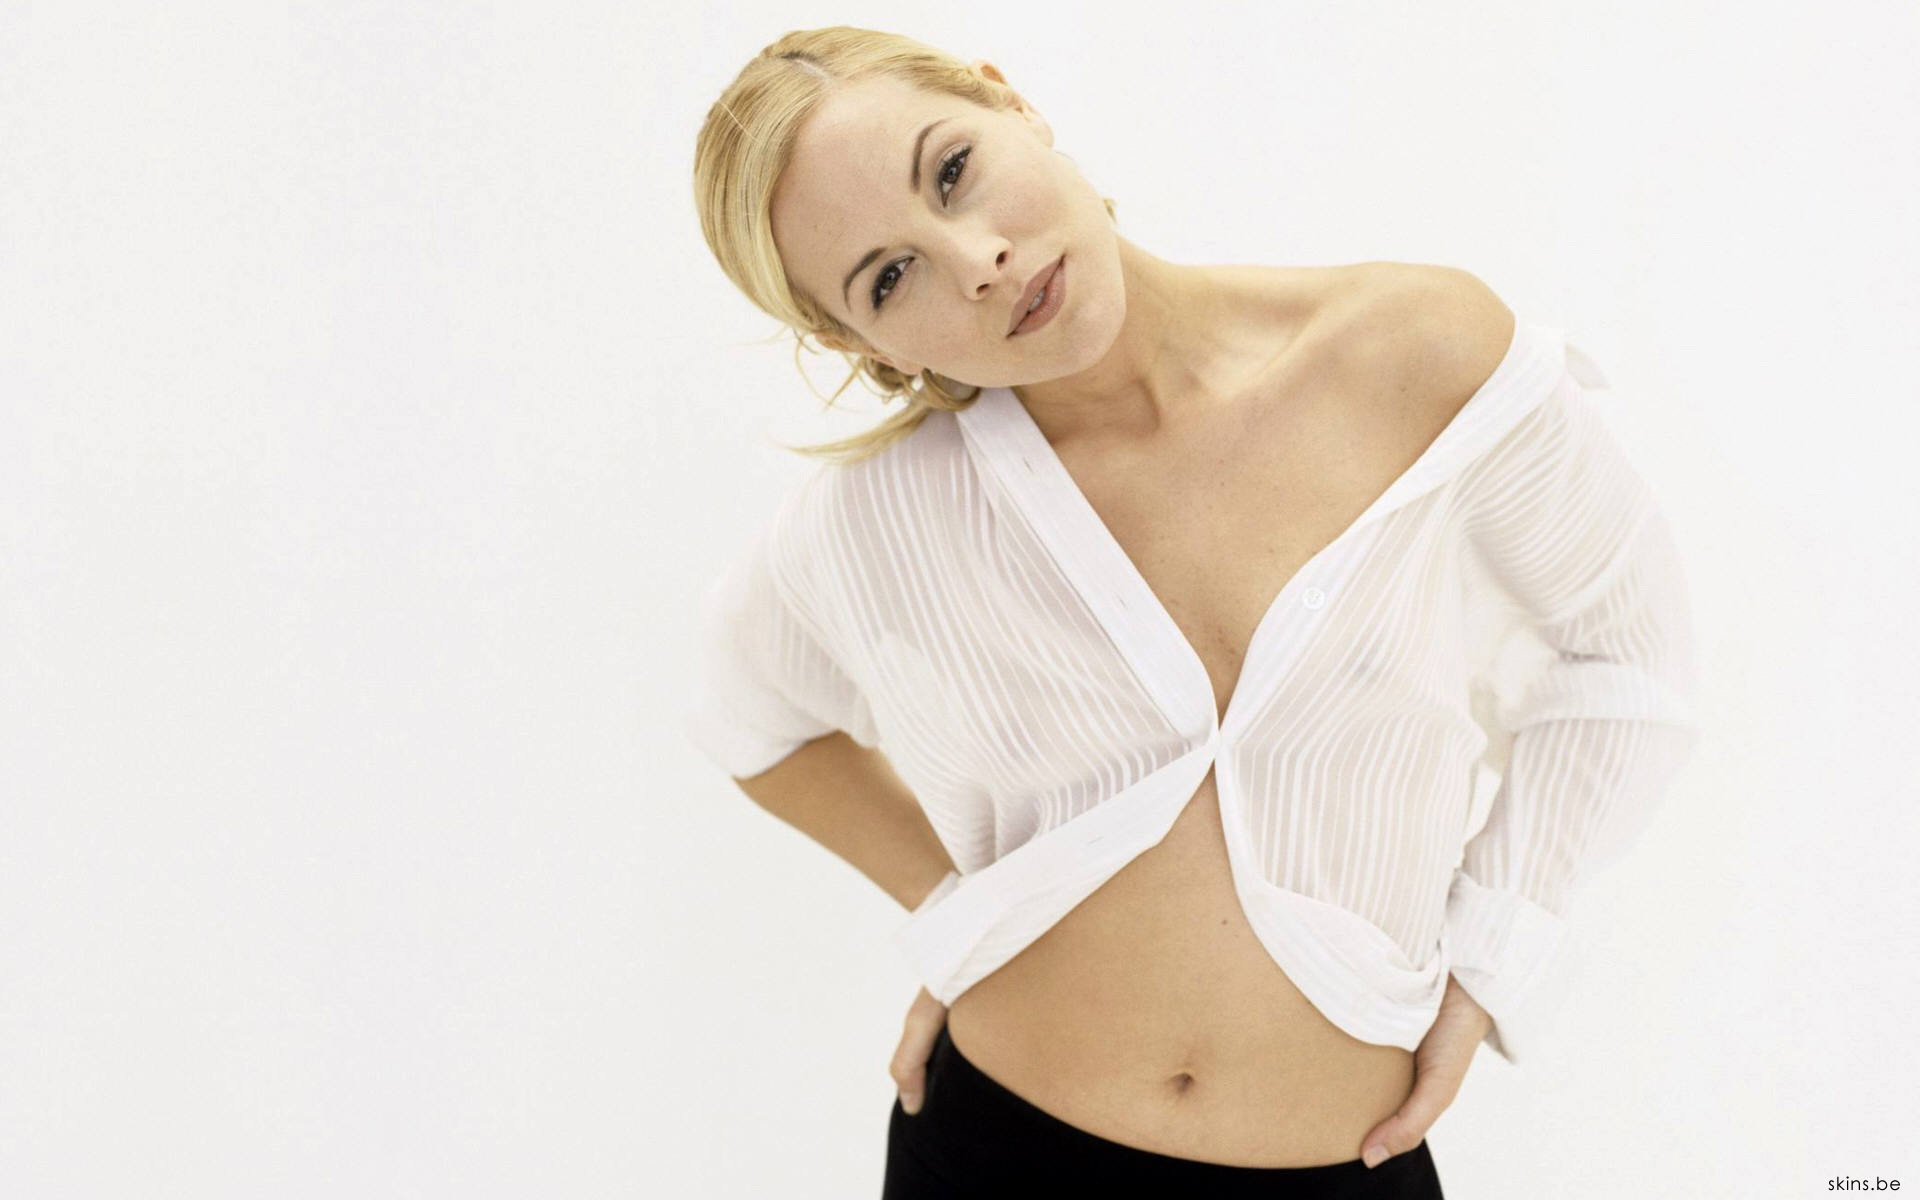 maria bello wallpapers images photos pictures backgrounds